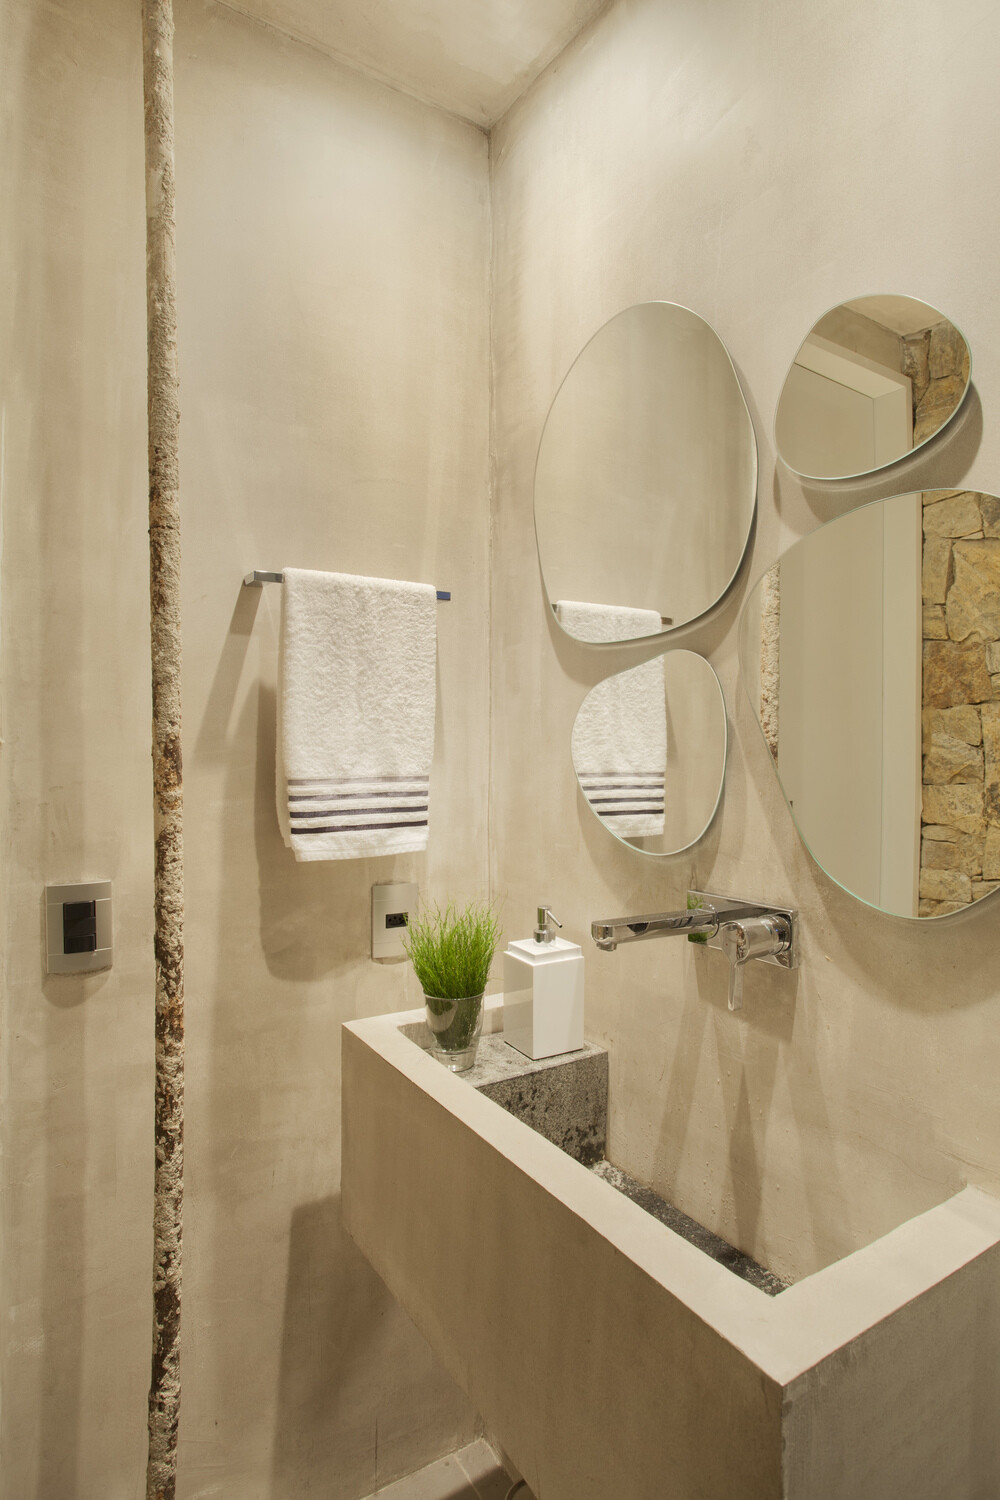 New York Style Apartment in Ipanema Automated and Controlled Via Ipad (8)